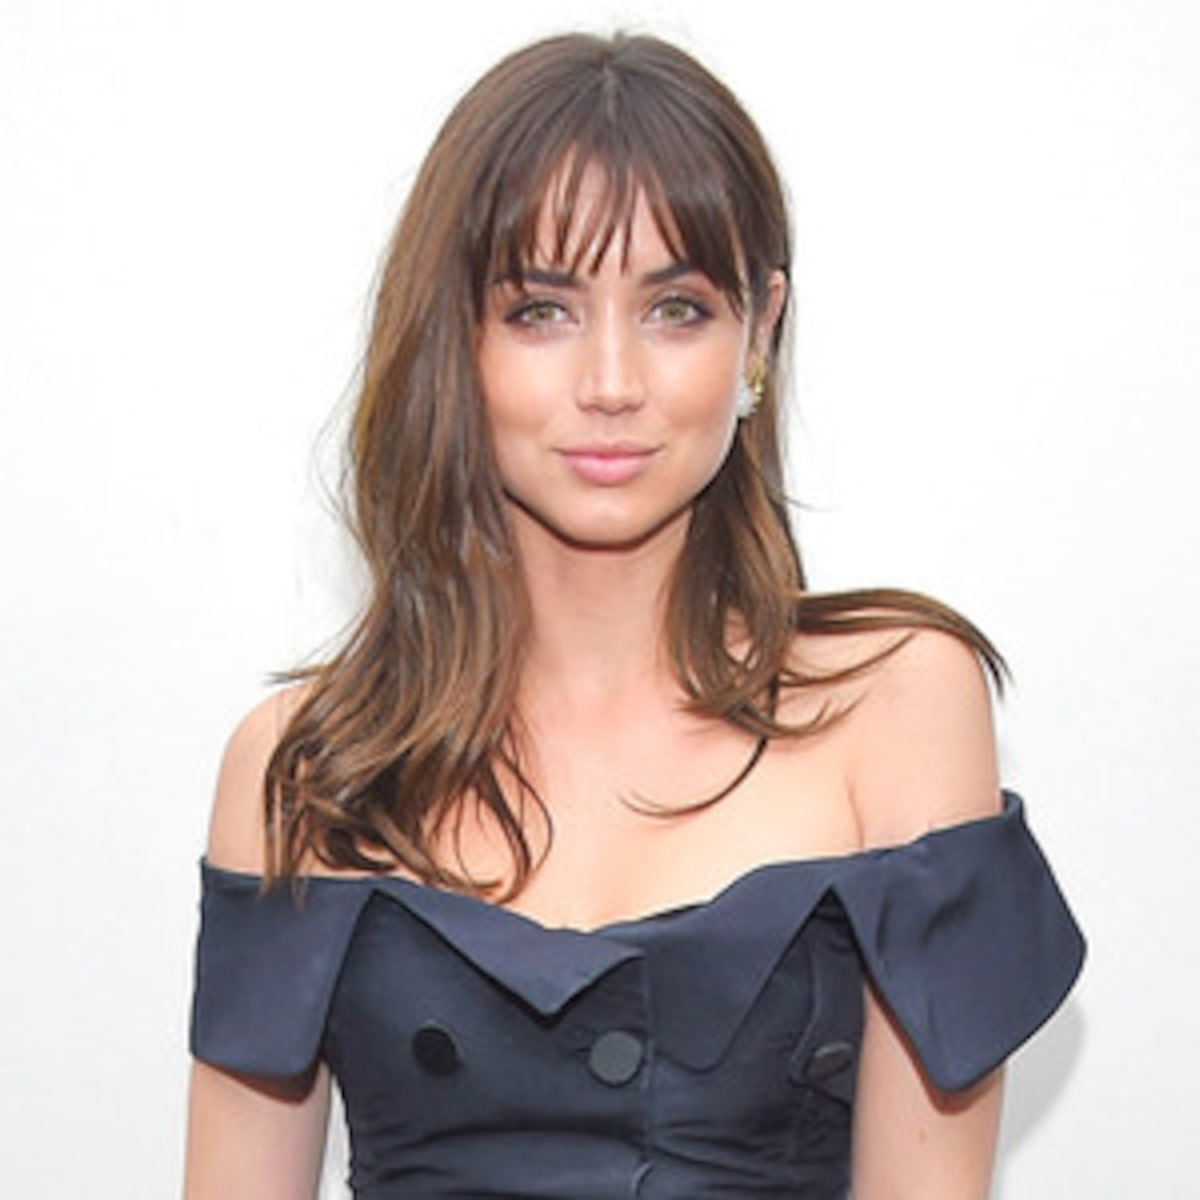 rs_300x300-160901162938-600-Ana-de-Armas-090116.jpg?fit=around|1200:1200&crop=1200:1200;center,top&output-quality=90